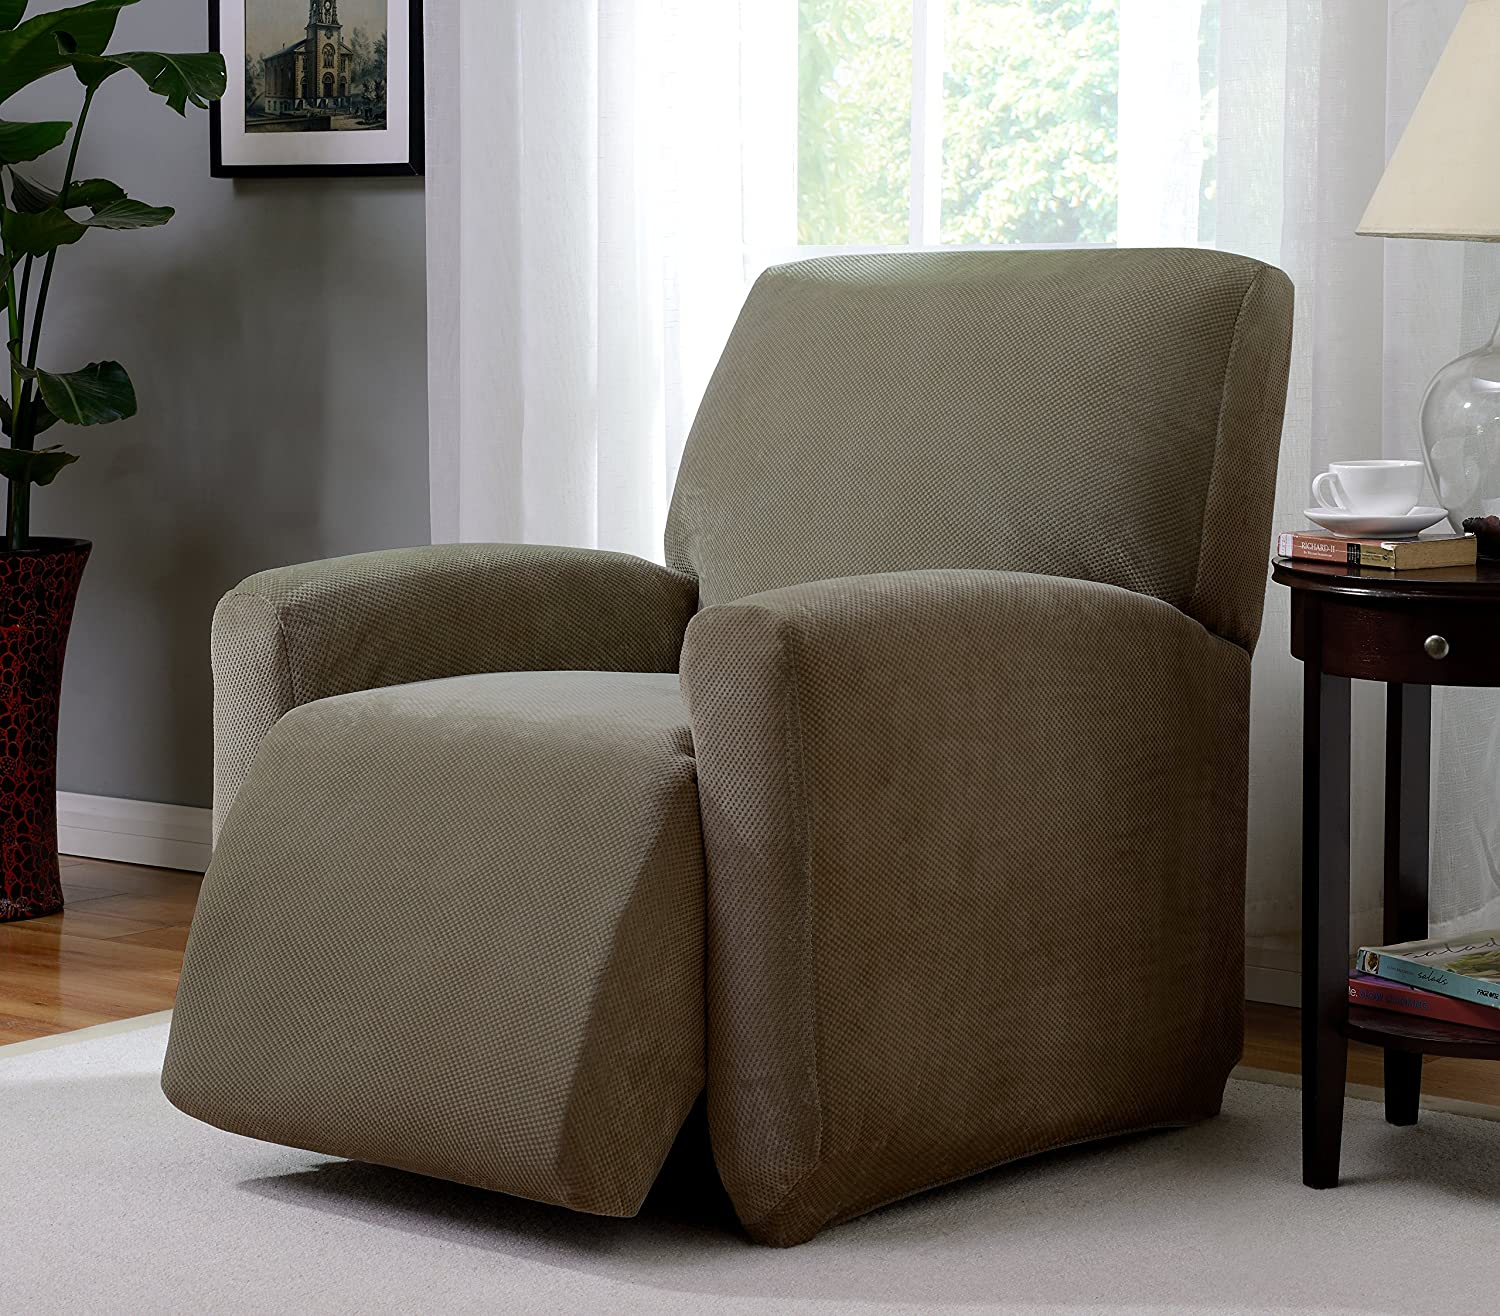 Madison PIQ-LGRECLNR-BG Stretch Pique Large Recliner Slipcover Stretch Pique Beige,Large Recliner Madison Industries